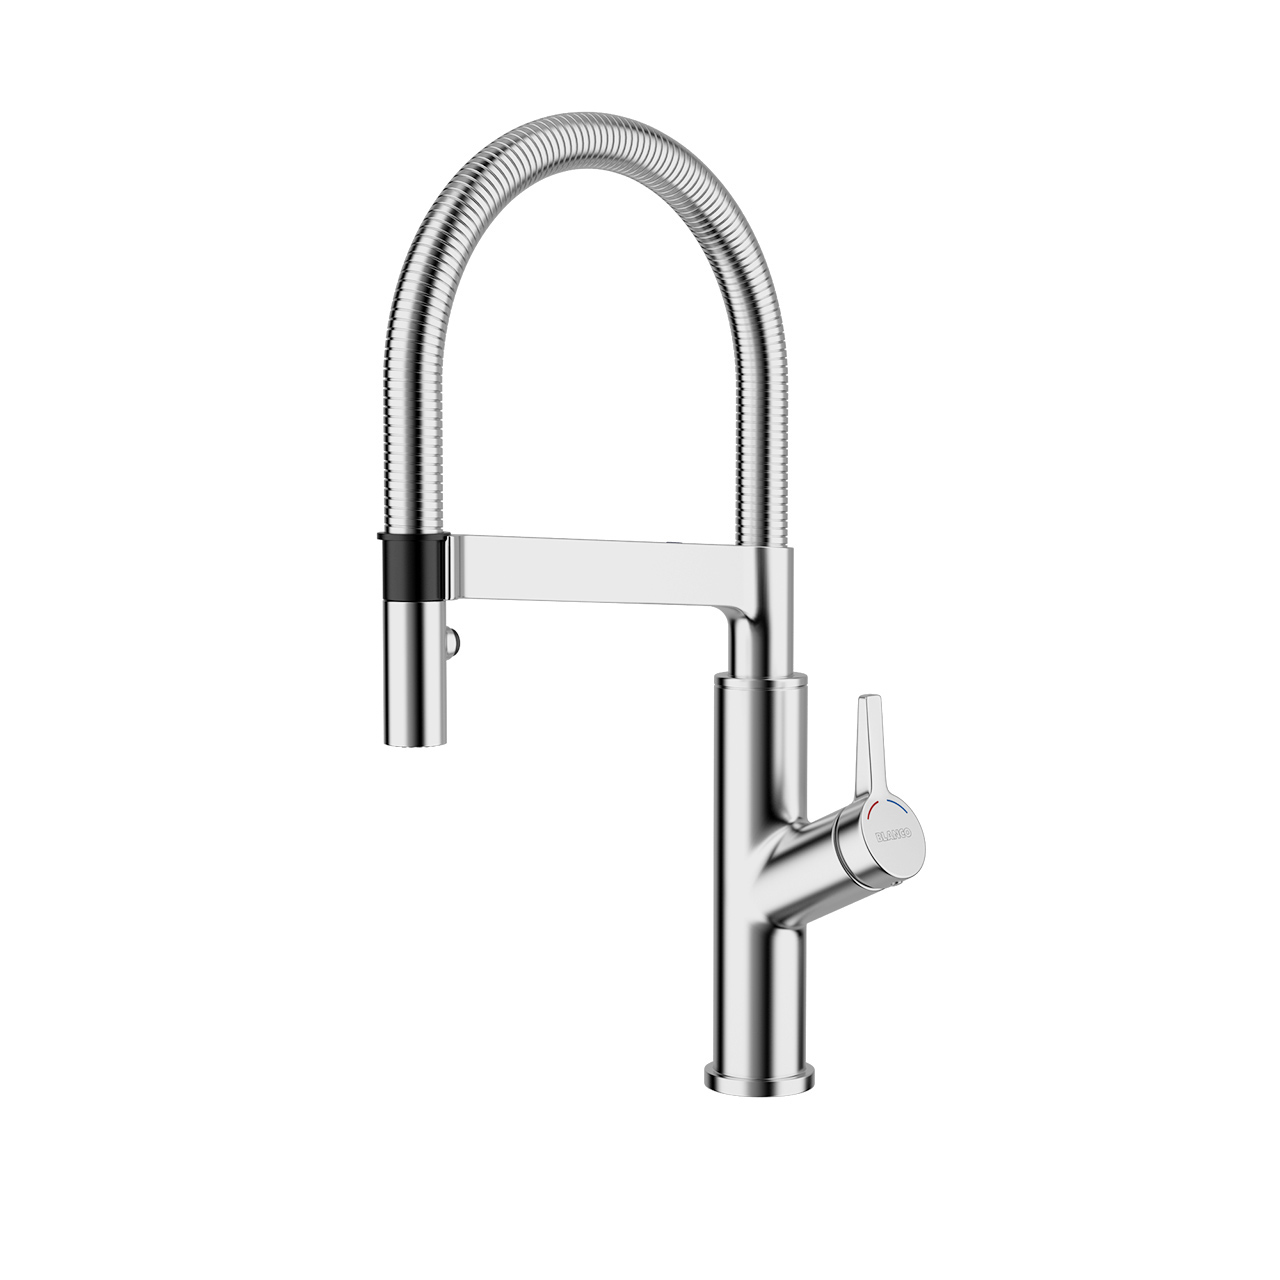 Solenta Senso Kitchen Faucet by Blanco